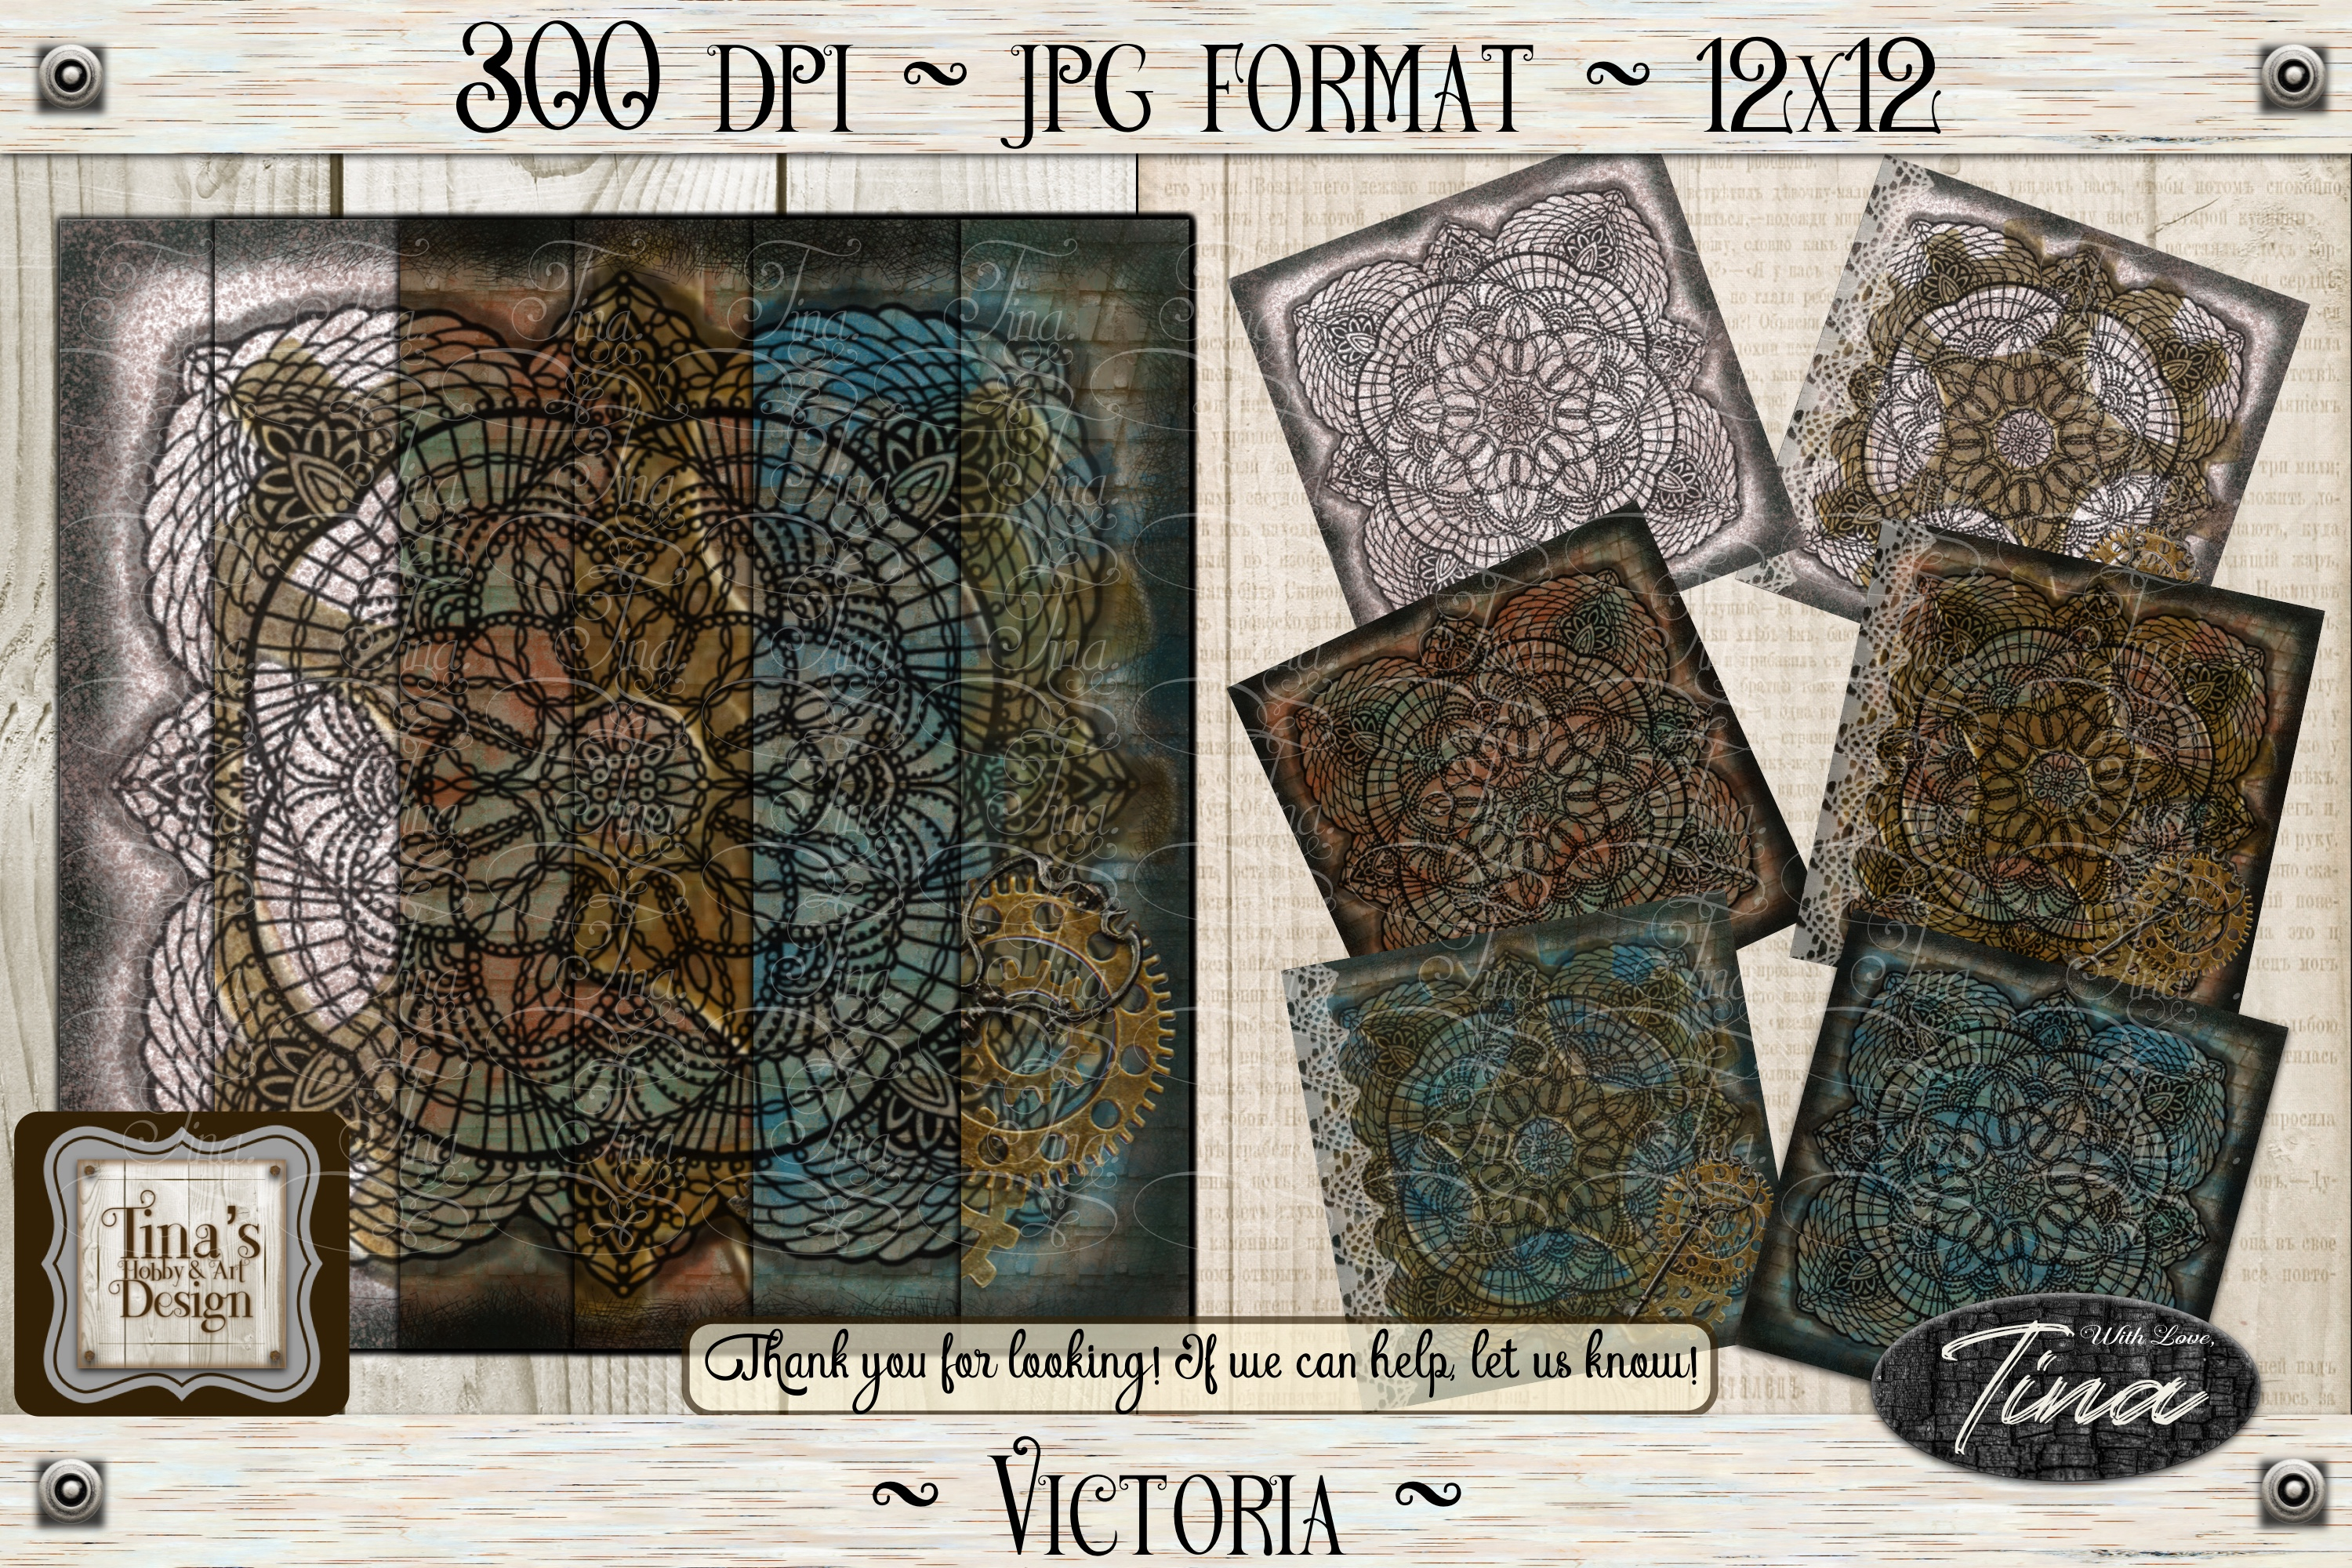 Victoria Steampunk Lace Doily Paper/Tag Collection 102618 example image 2